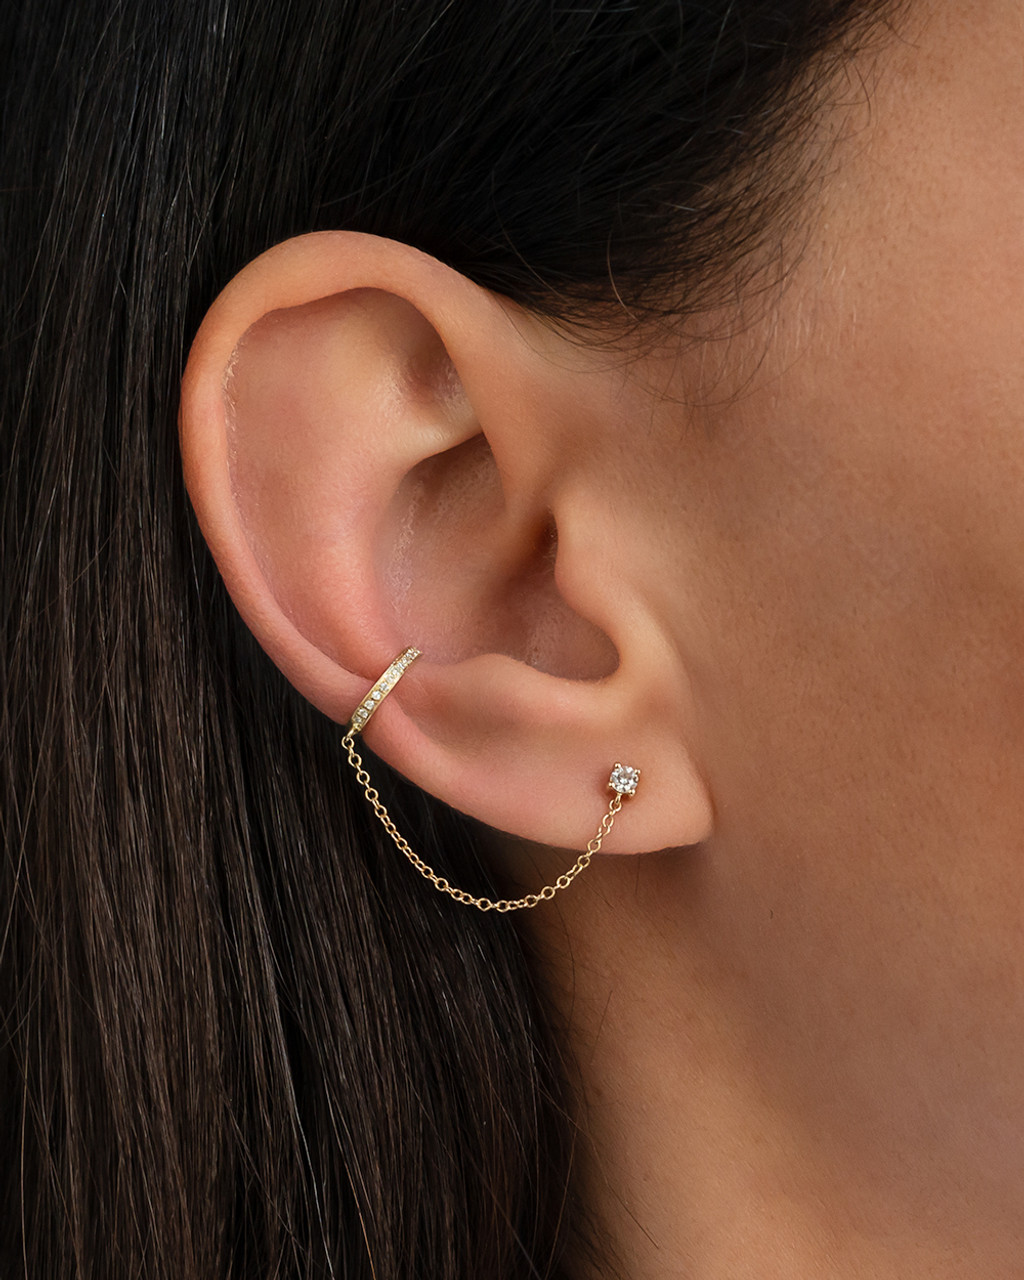 Diamond ear cuff with diamond stud chain